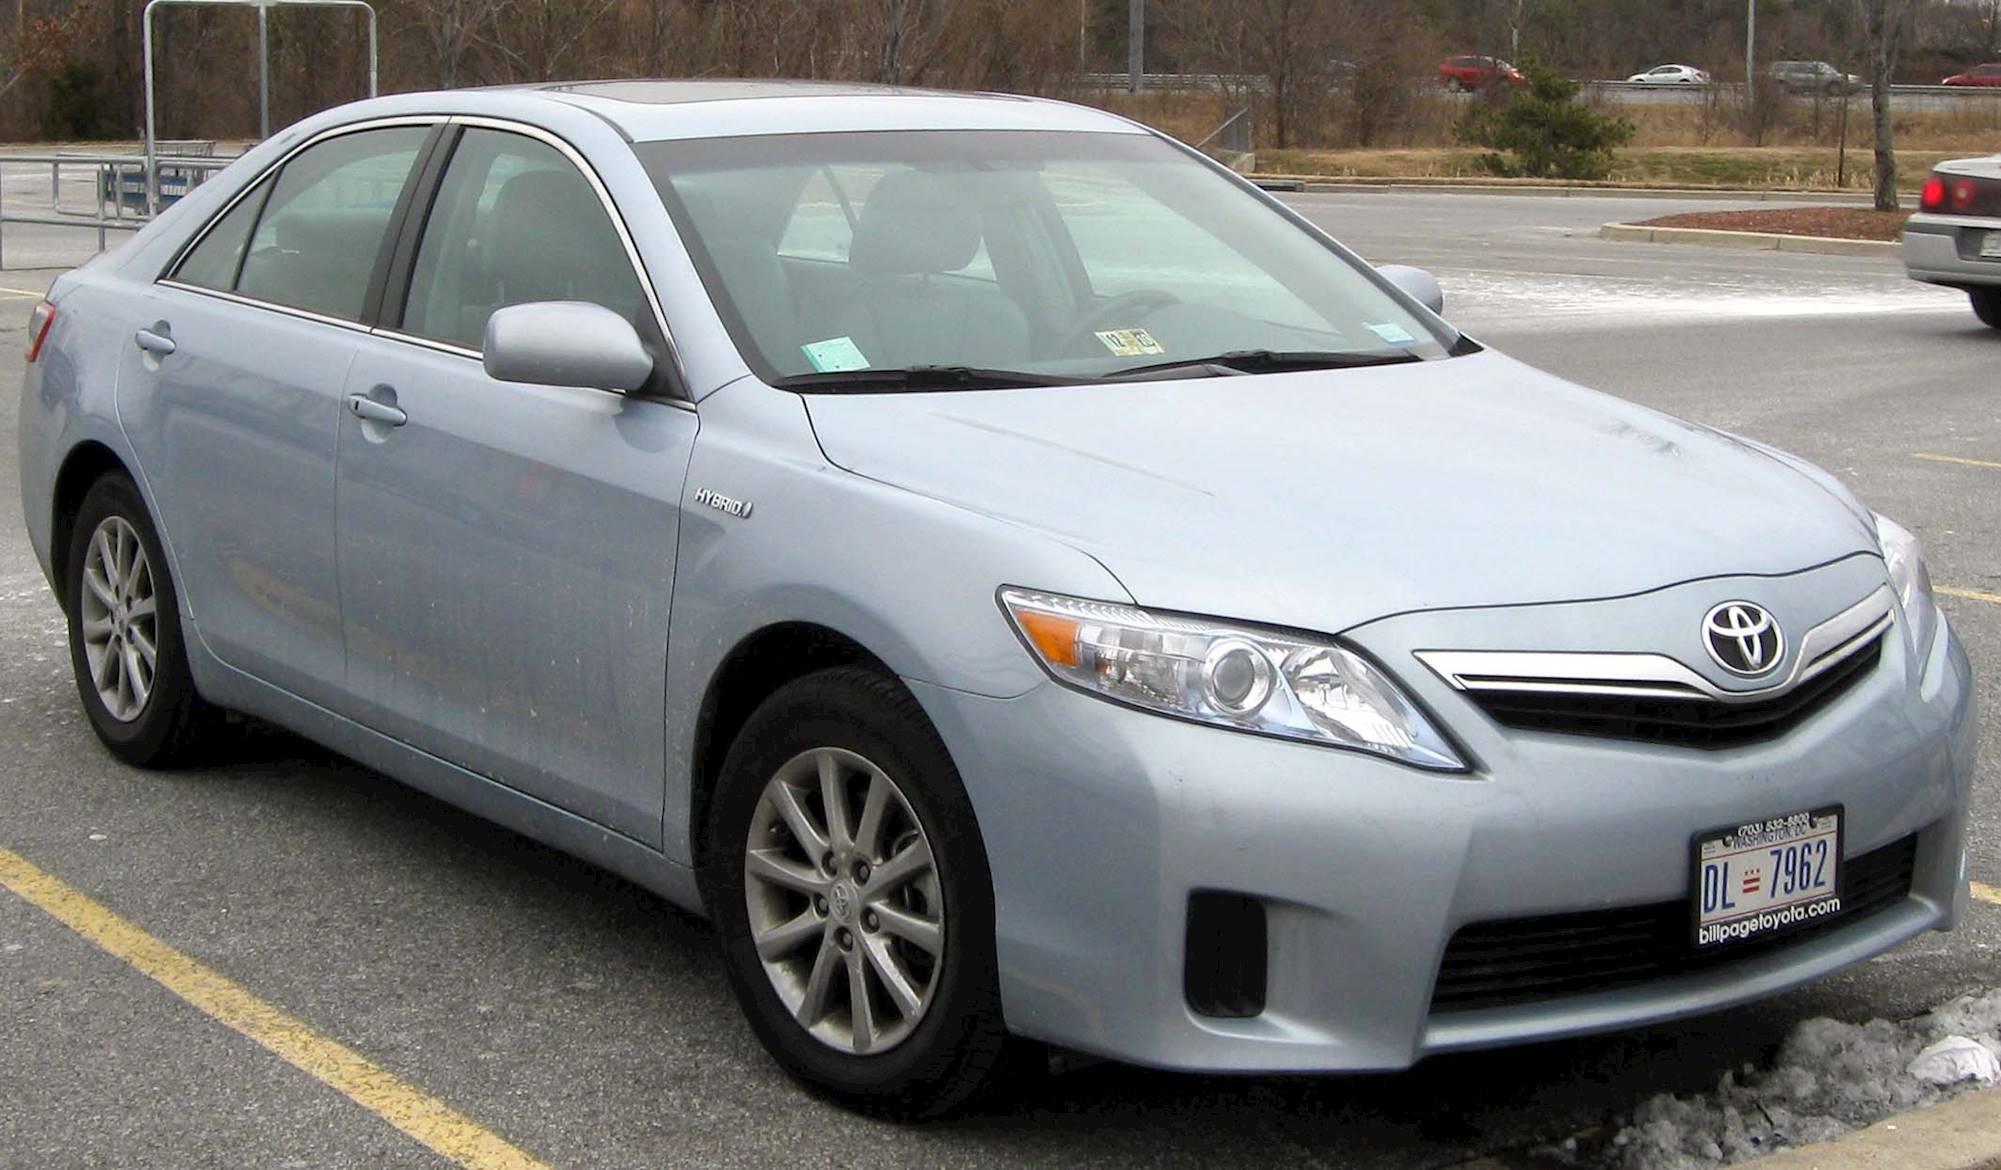 2010 toyota camry hybrid base sedan 2 4l hybrid cvt auto. Black Bedroom Furniture Sets. Home Design Ideas